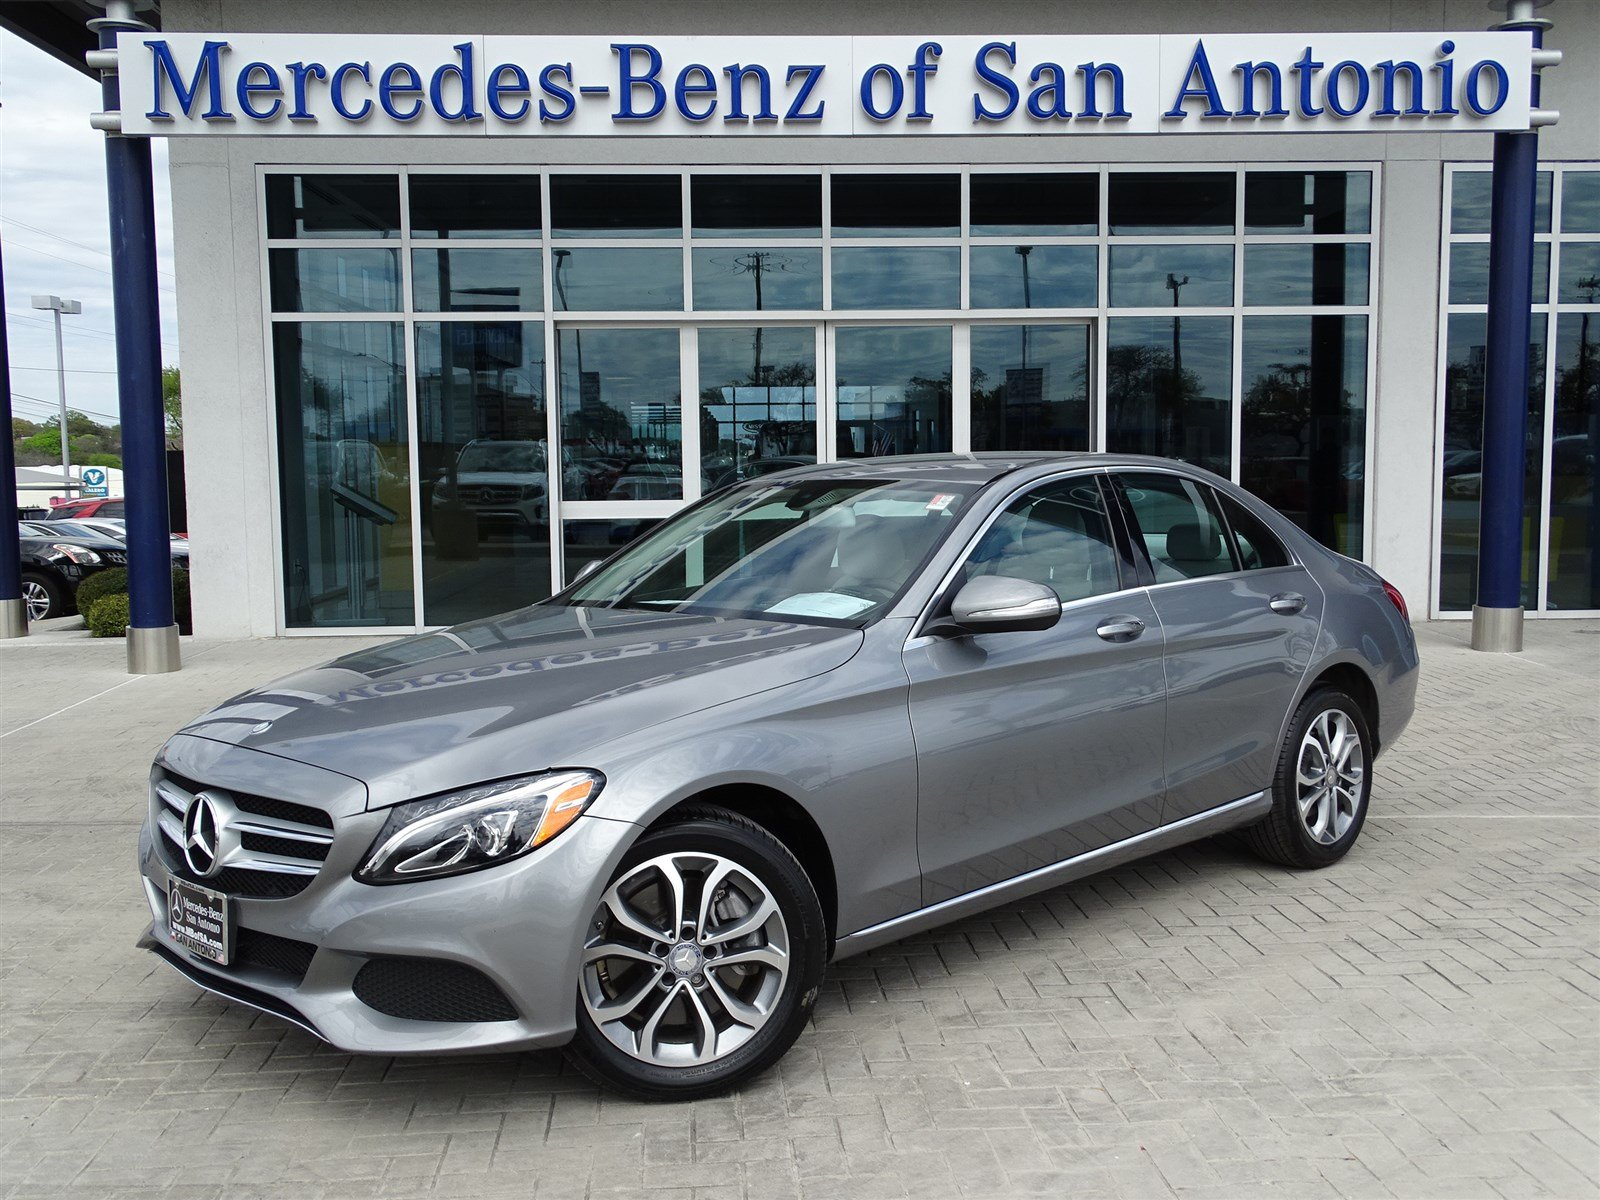 pre owned 2015 mercedes benz c class c 300 4dr car in san antonio 7921p mercedes benz of san. Black Bedroom Furniture Sets. Home Design Ideas